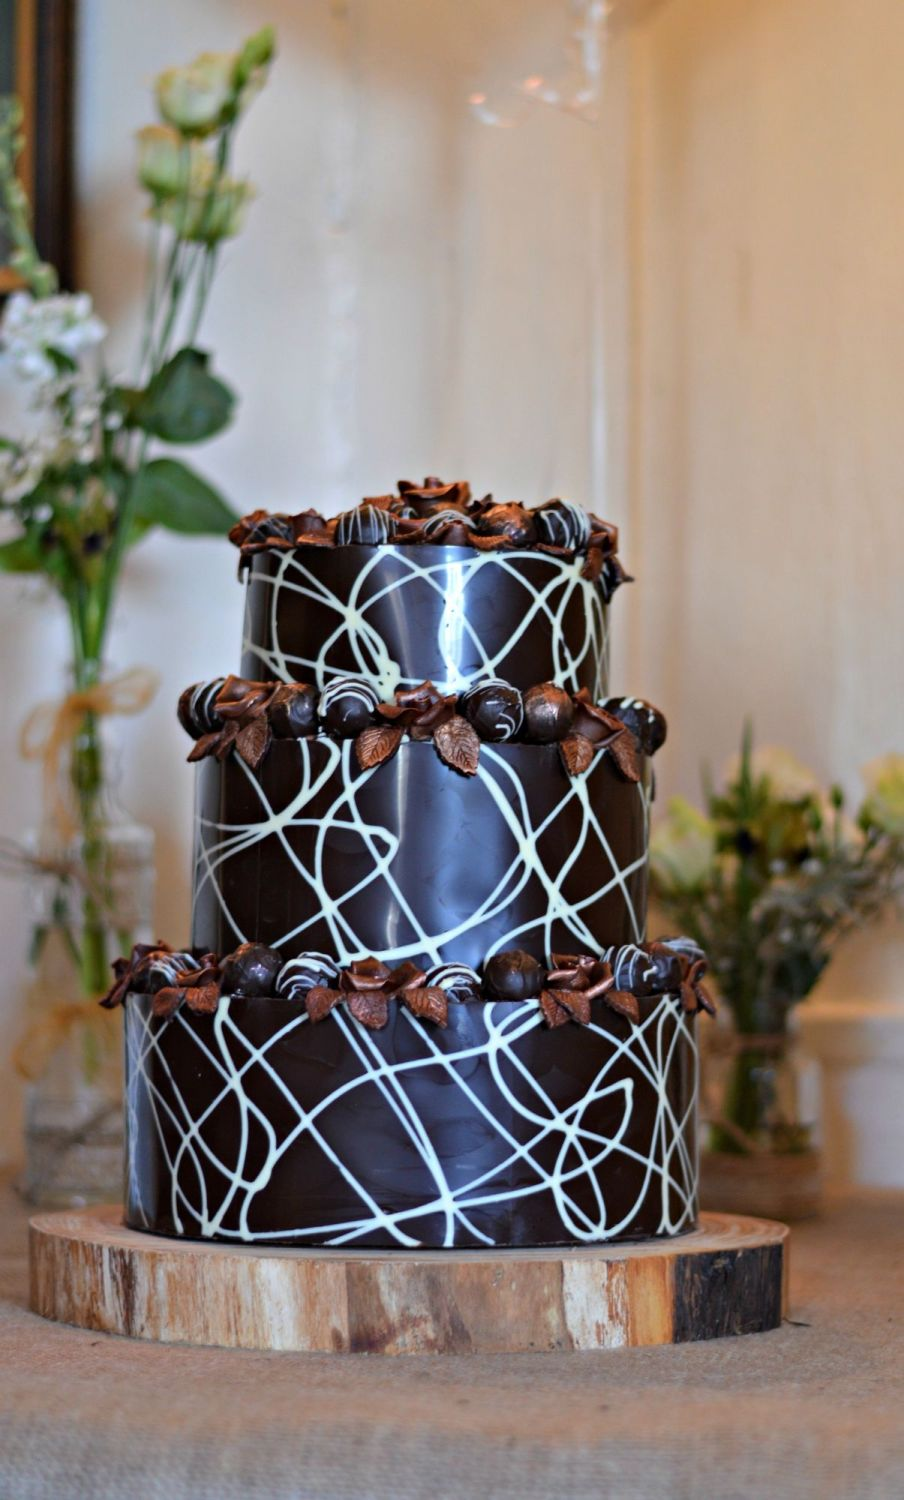 Chocolate Wedding Cake from the side